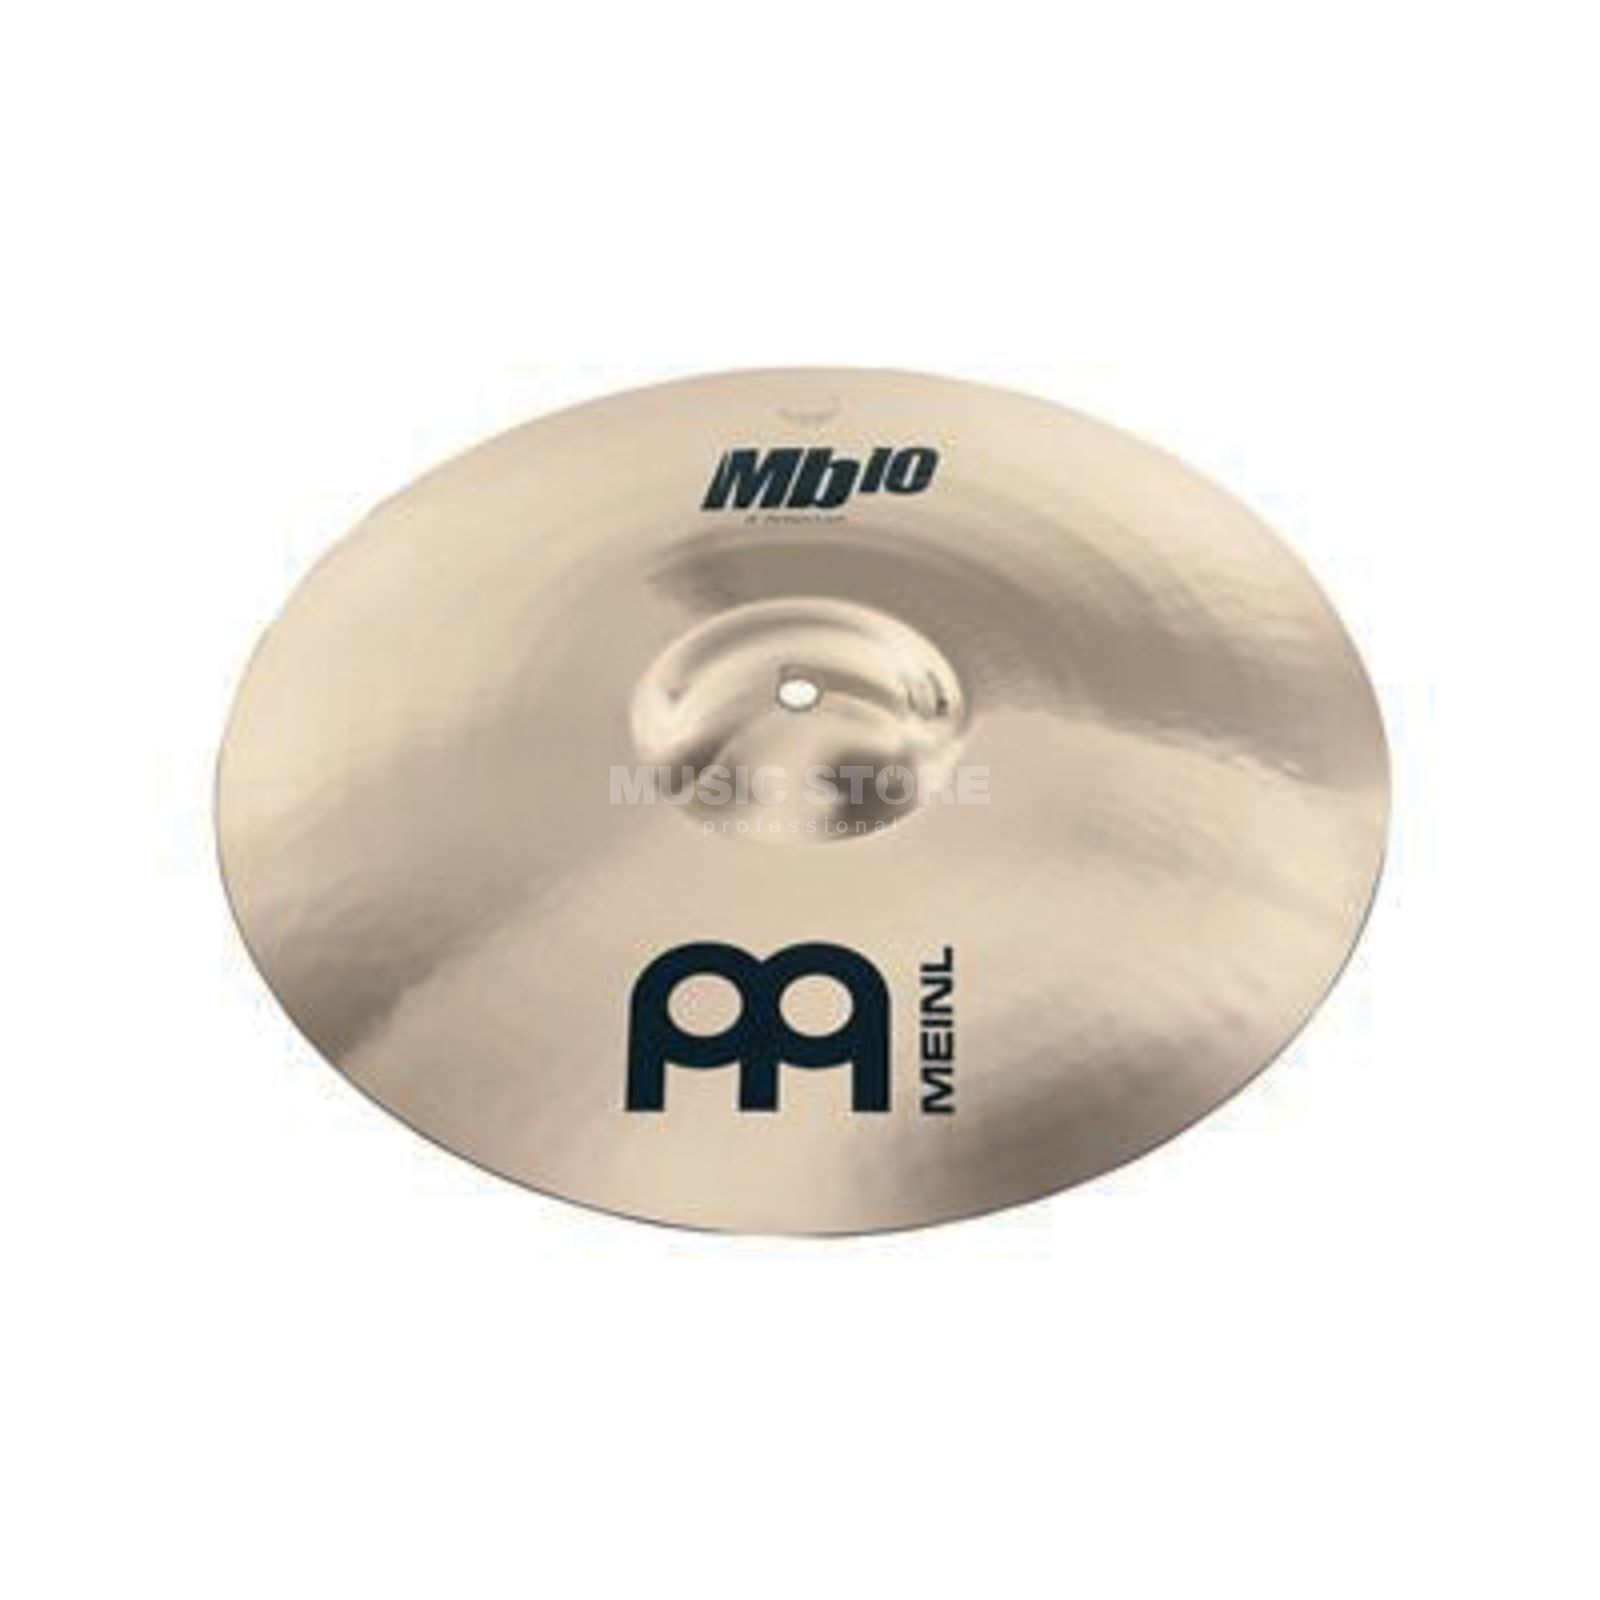 "Meinl MB10 Heavy Crash 20"" MB10-20HC-B, Brilliant Finish Product Image"